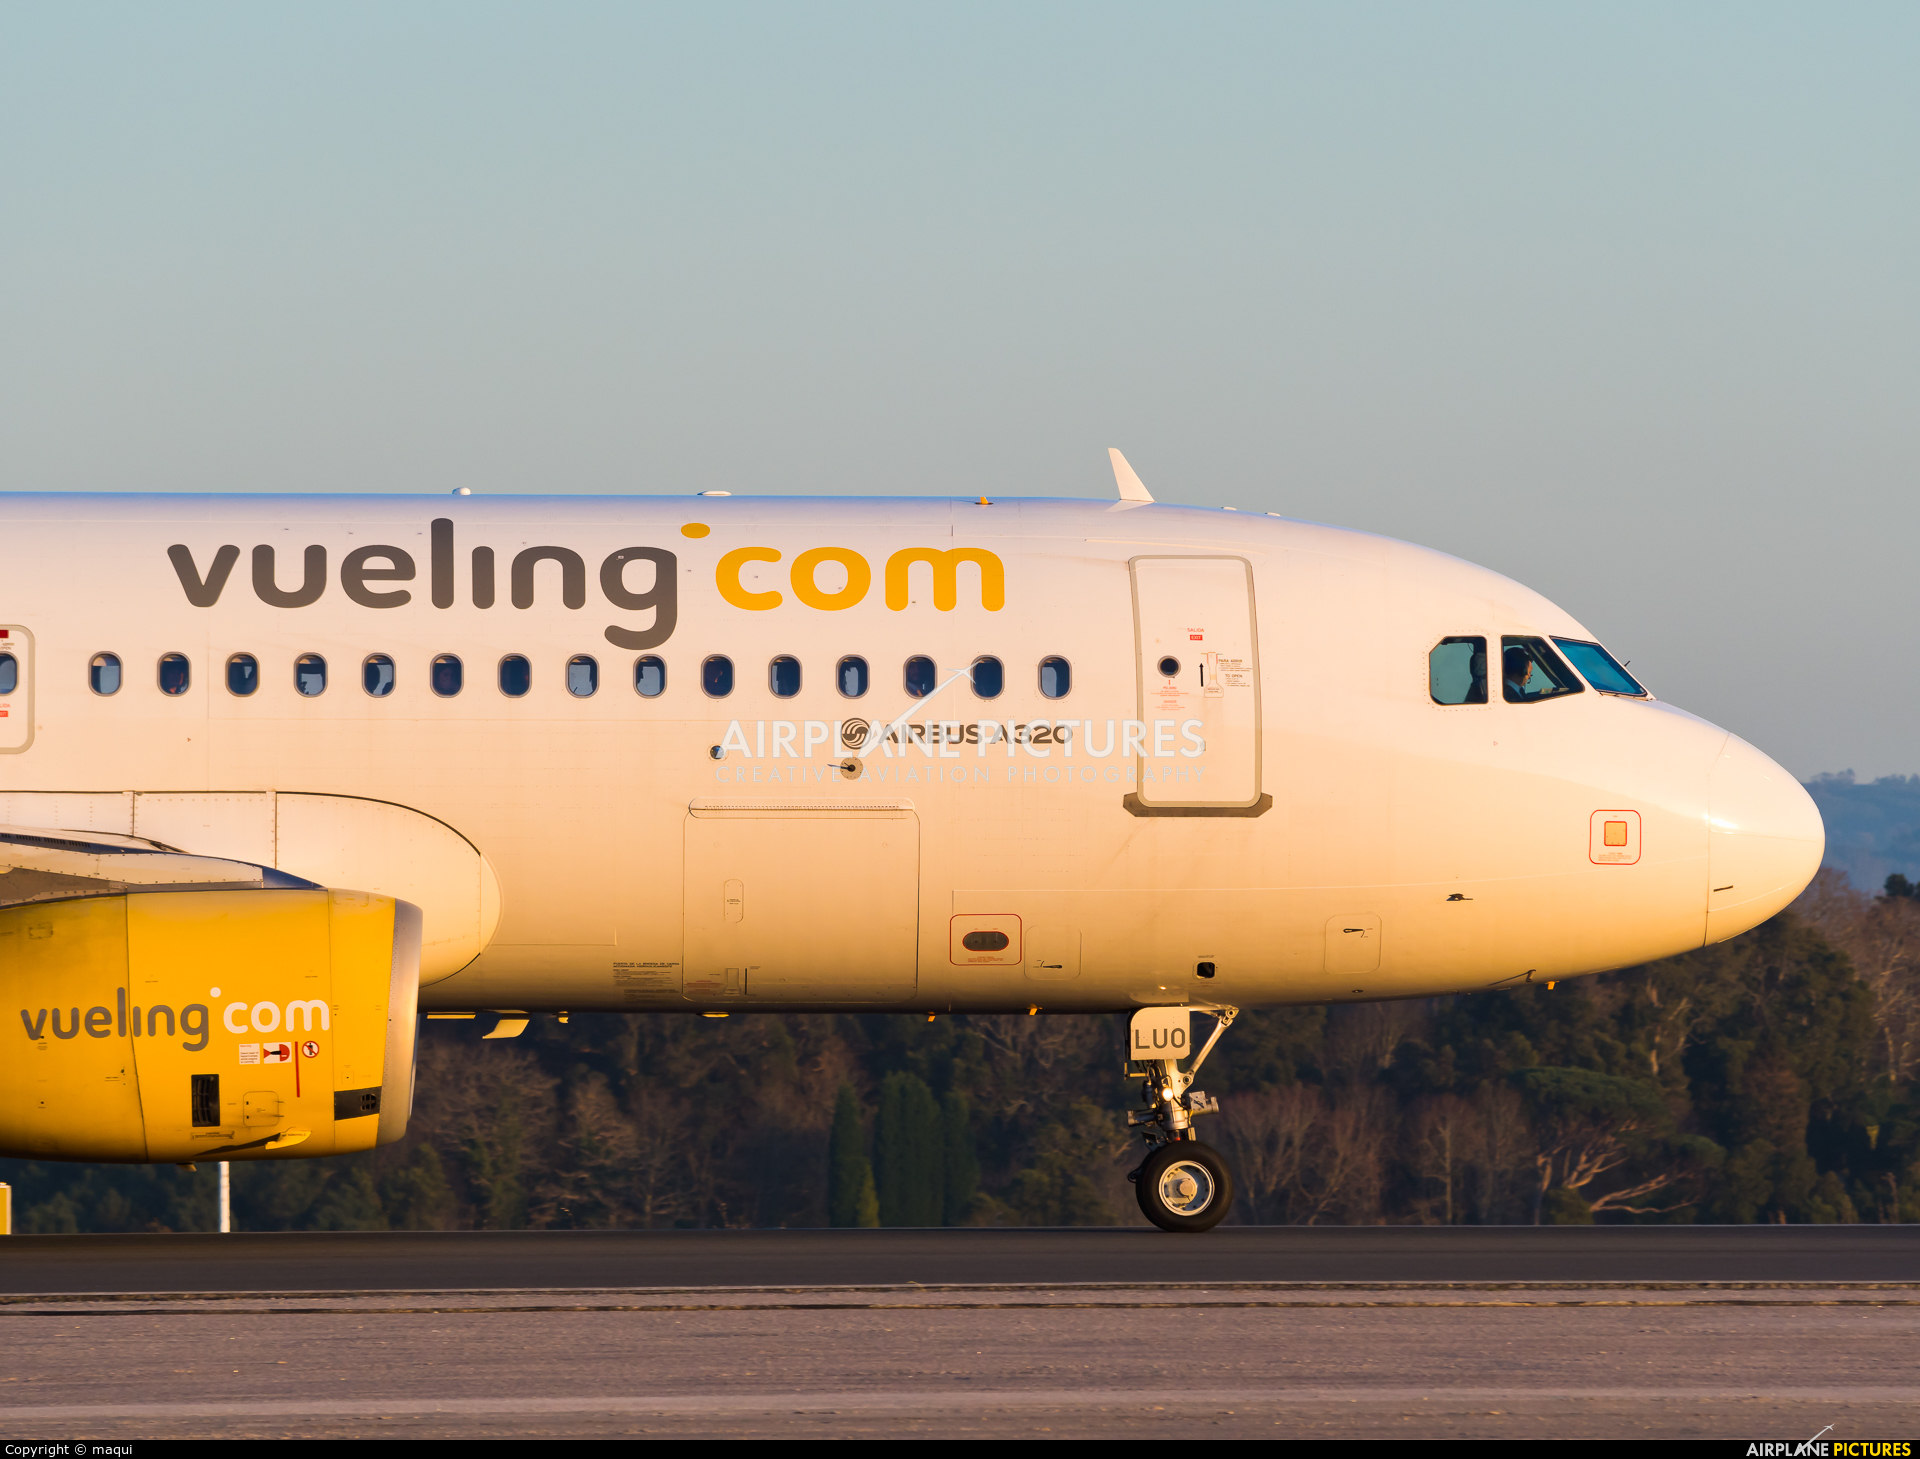 Vueling Airlines EC-LUO aircraft at La Coruña